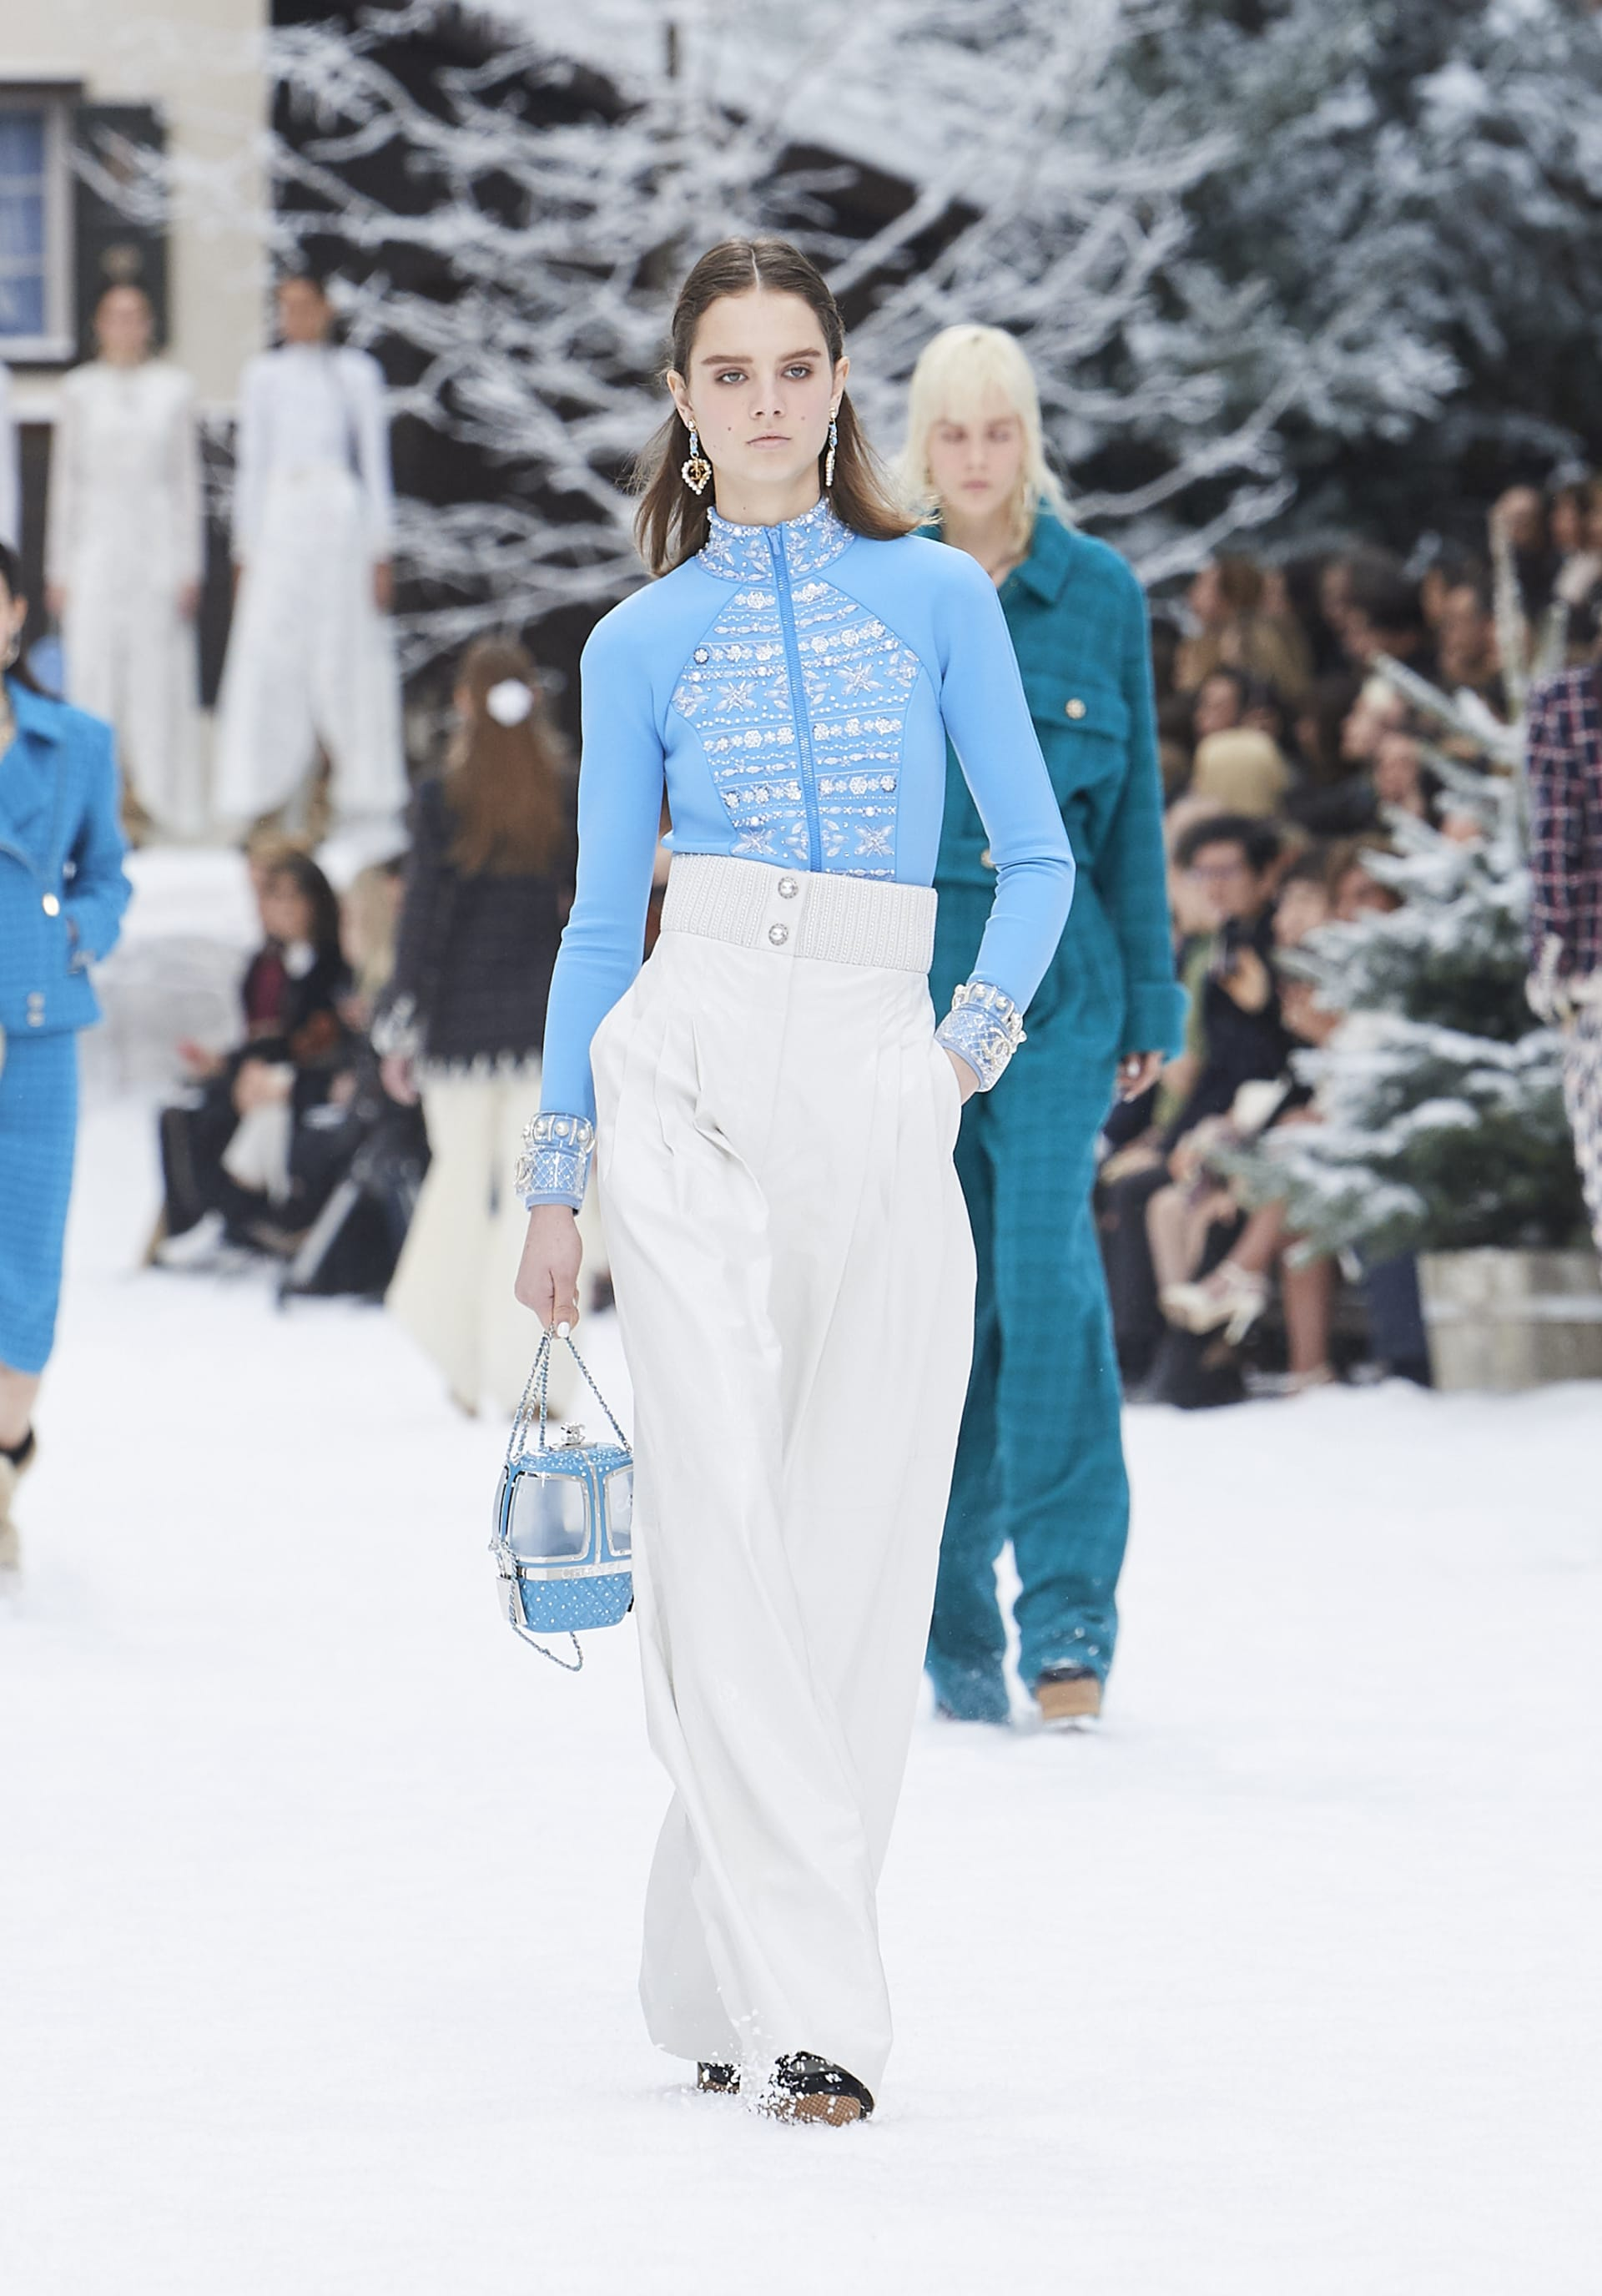 View 1 - Look 41 - Fall-Winter 2019/20